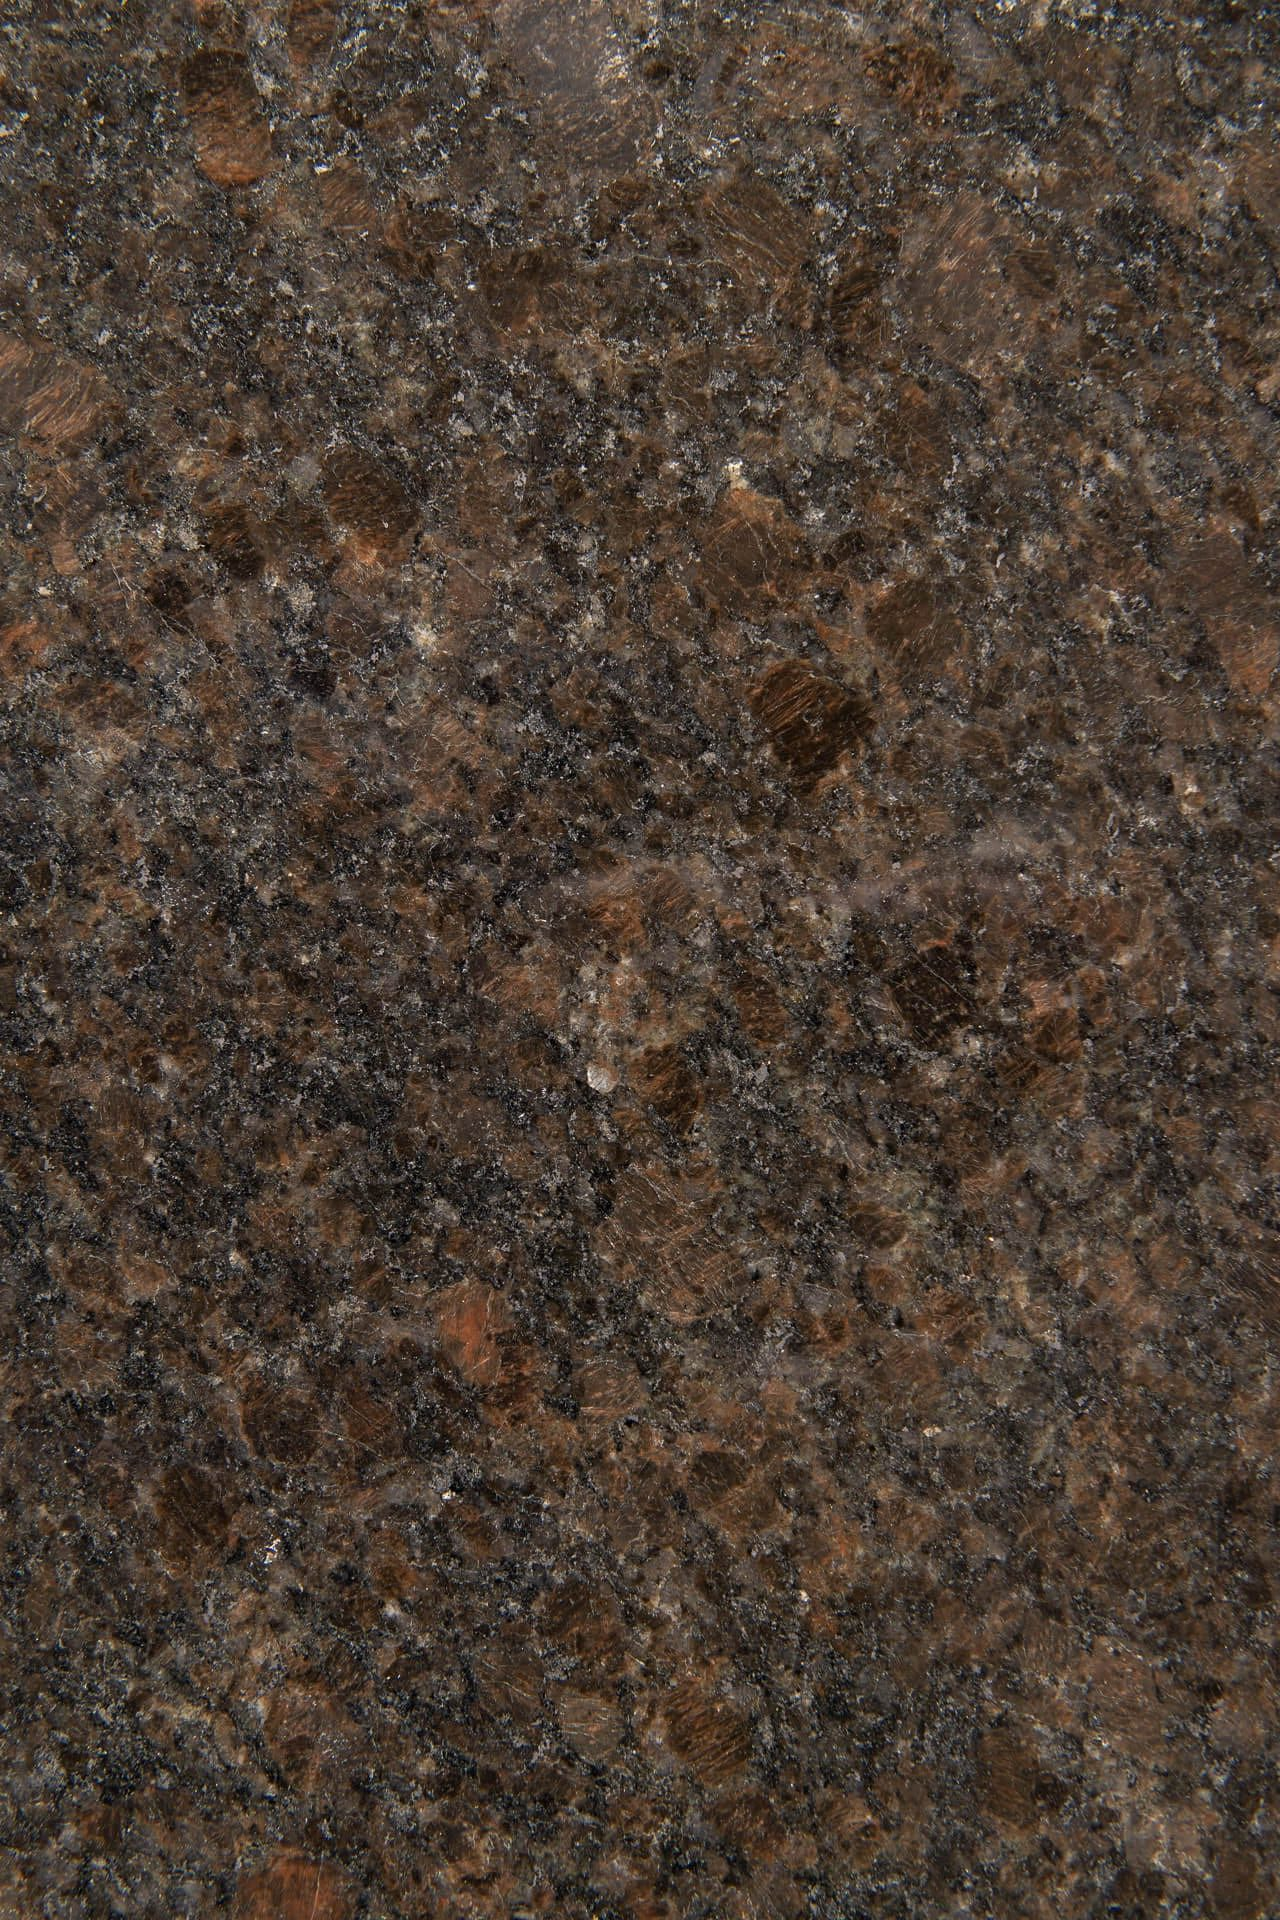 coffee brown cu countertop - by Magnolia Countertops. A Countertop fabricator of Granite Countertops, Marble Countertops, and Quartz Countertops in Cookeville and Crossville TN.